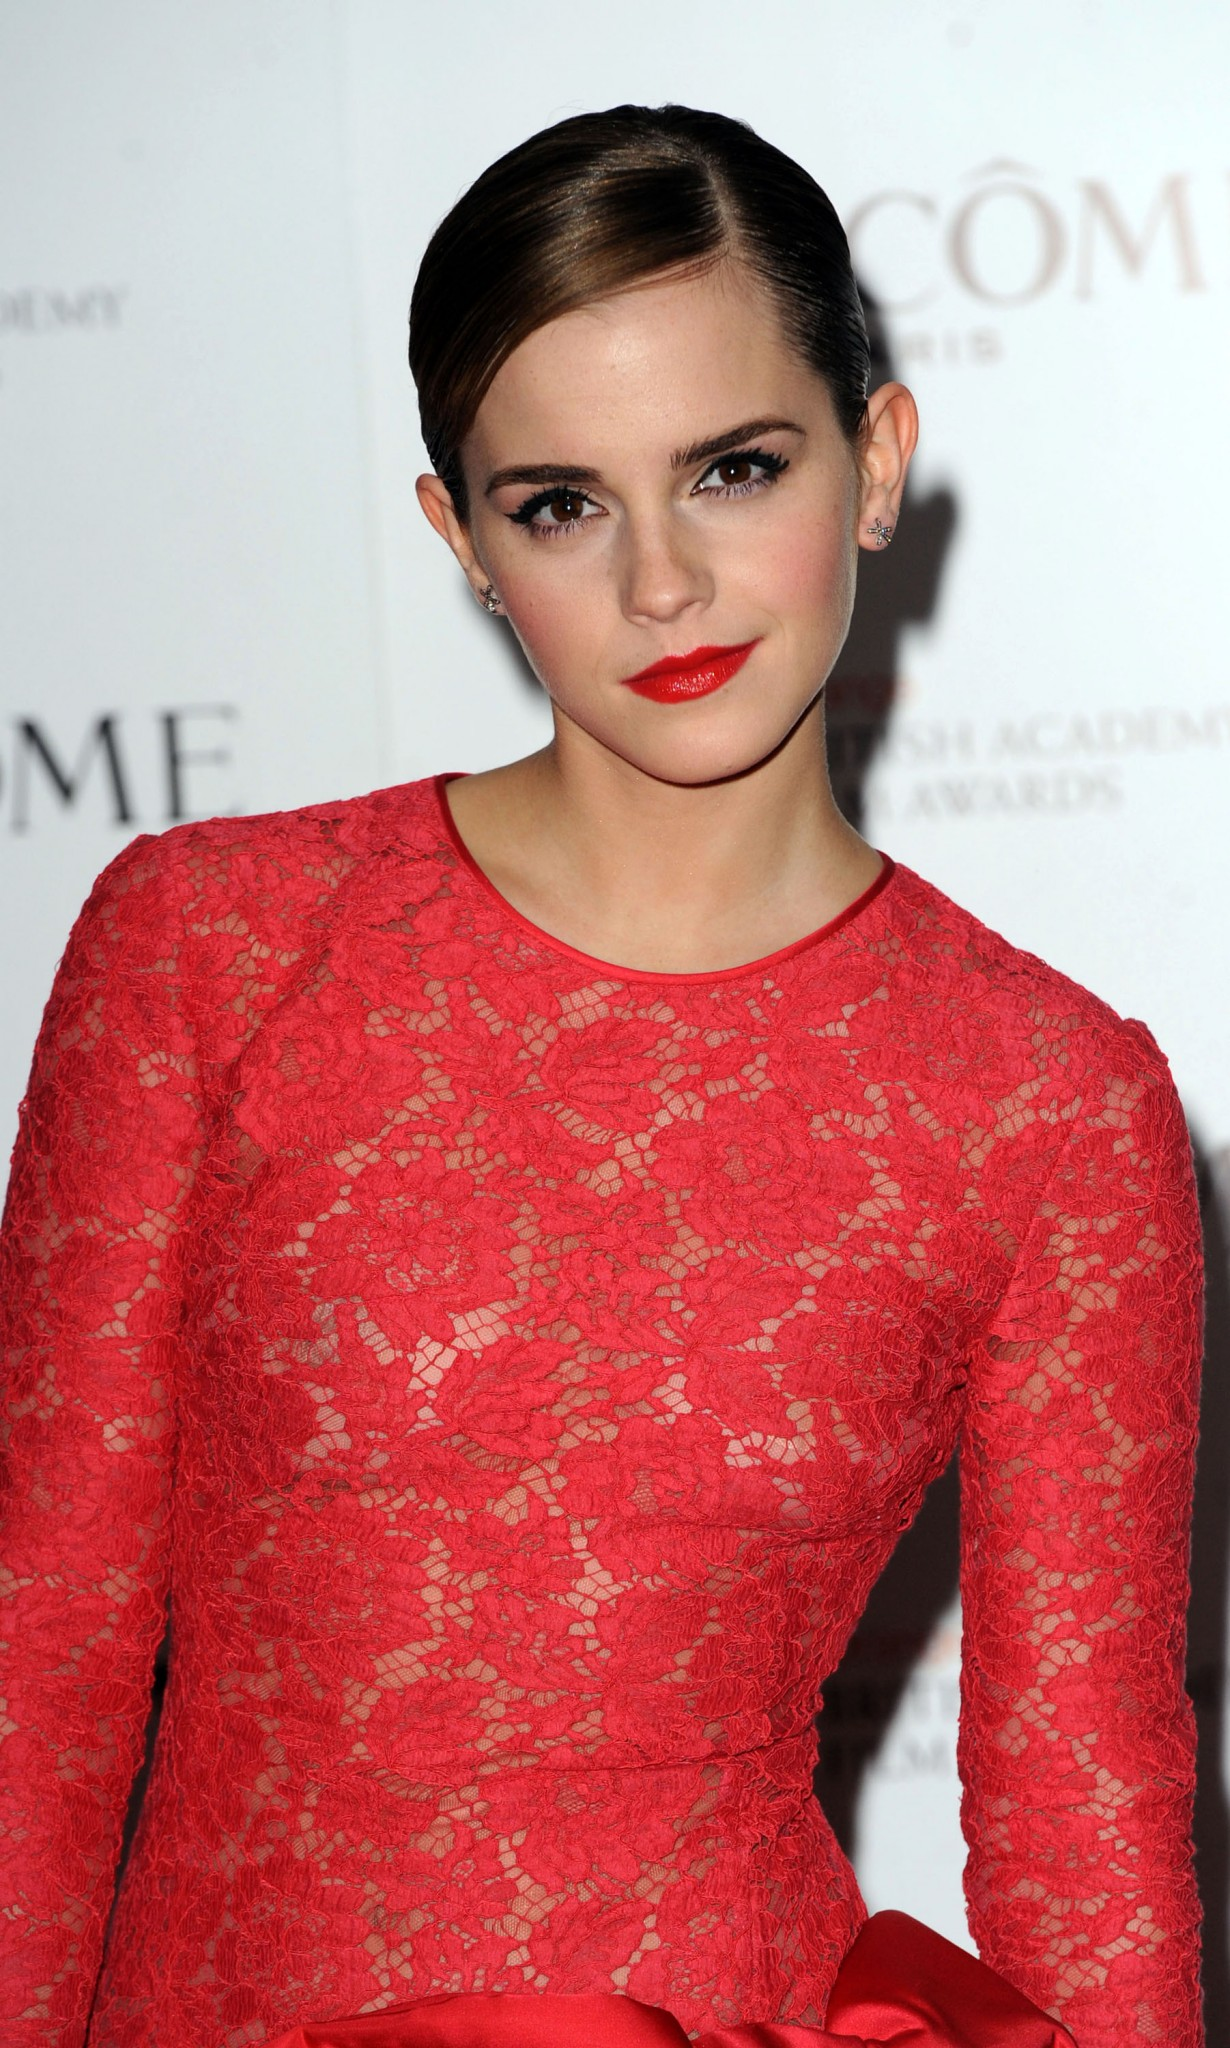 emma-watson-nipple-see-through-red-dress-bafta-party-100-15.jpg